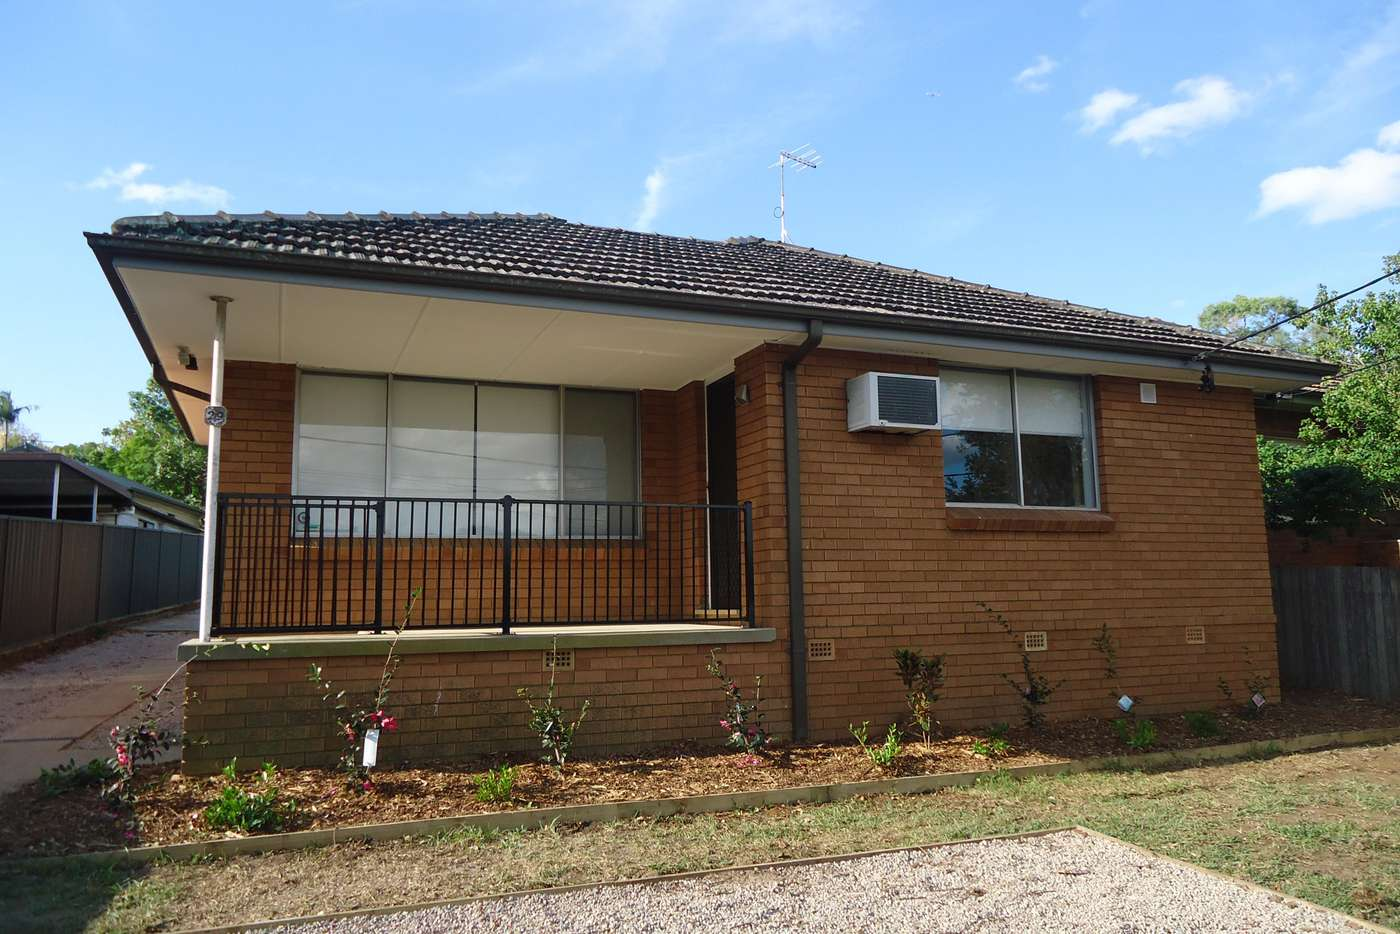 Main view of Homely house listing, 29 Quakers Road, Marayong NSW 2148